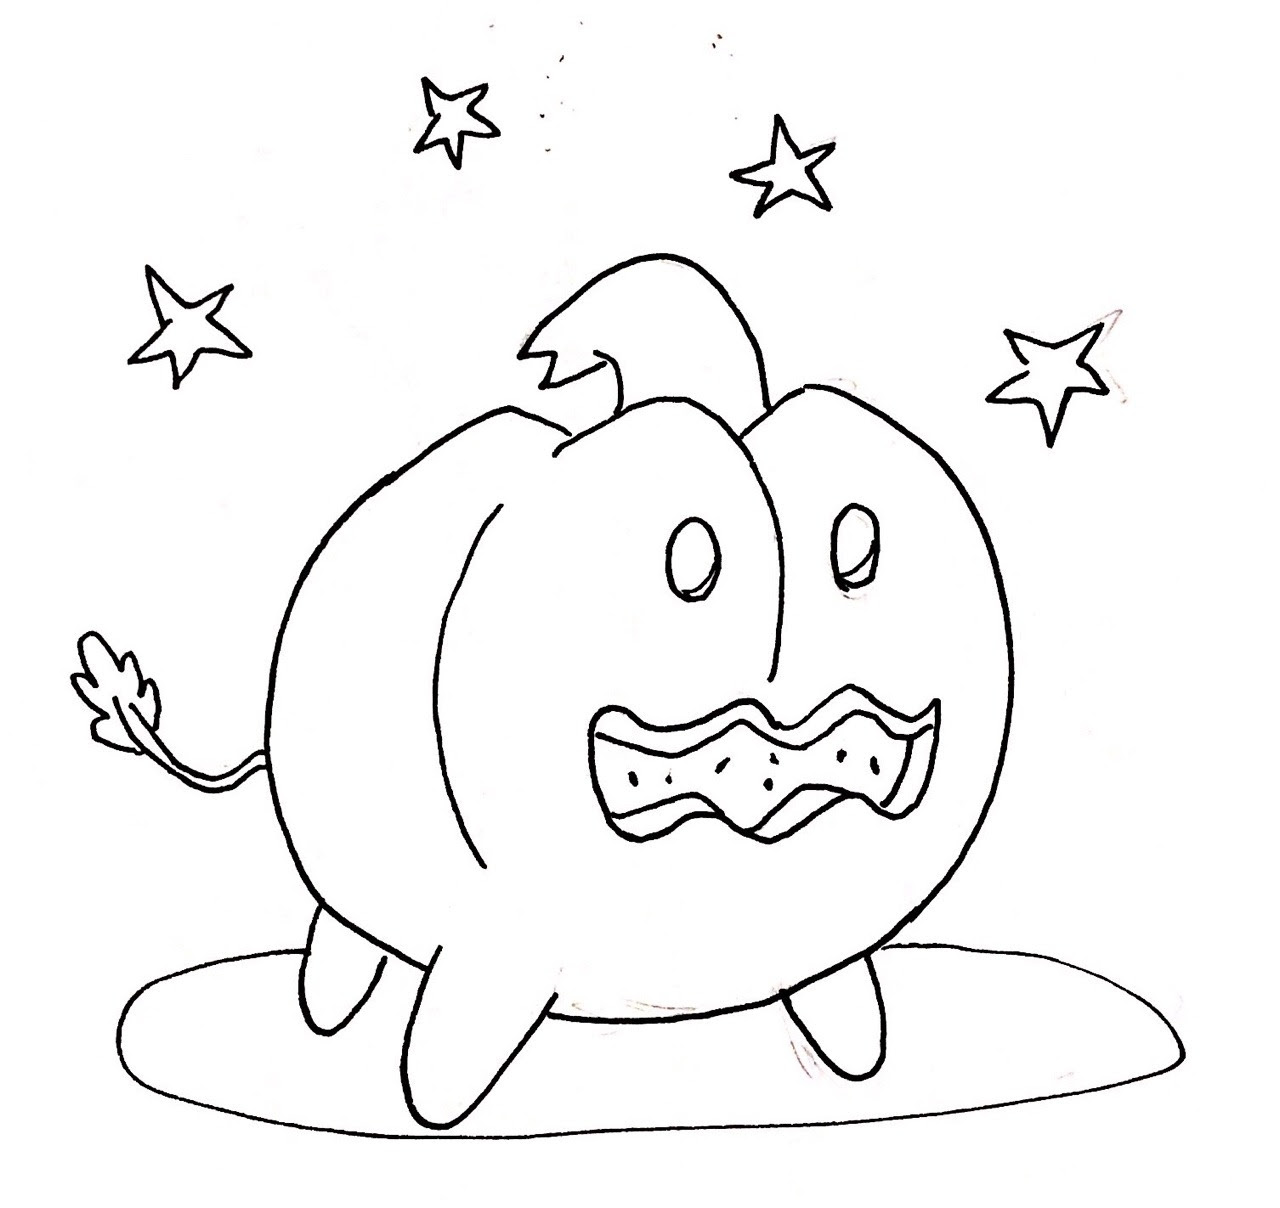 Inktober day 25: Pumpkin